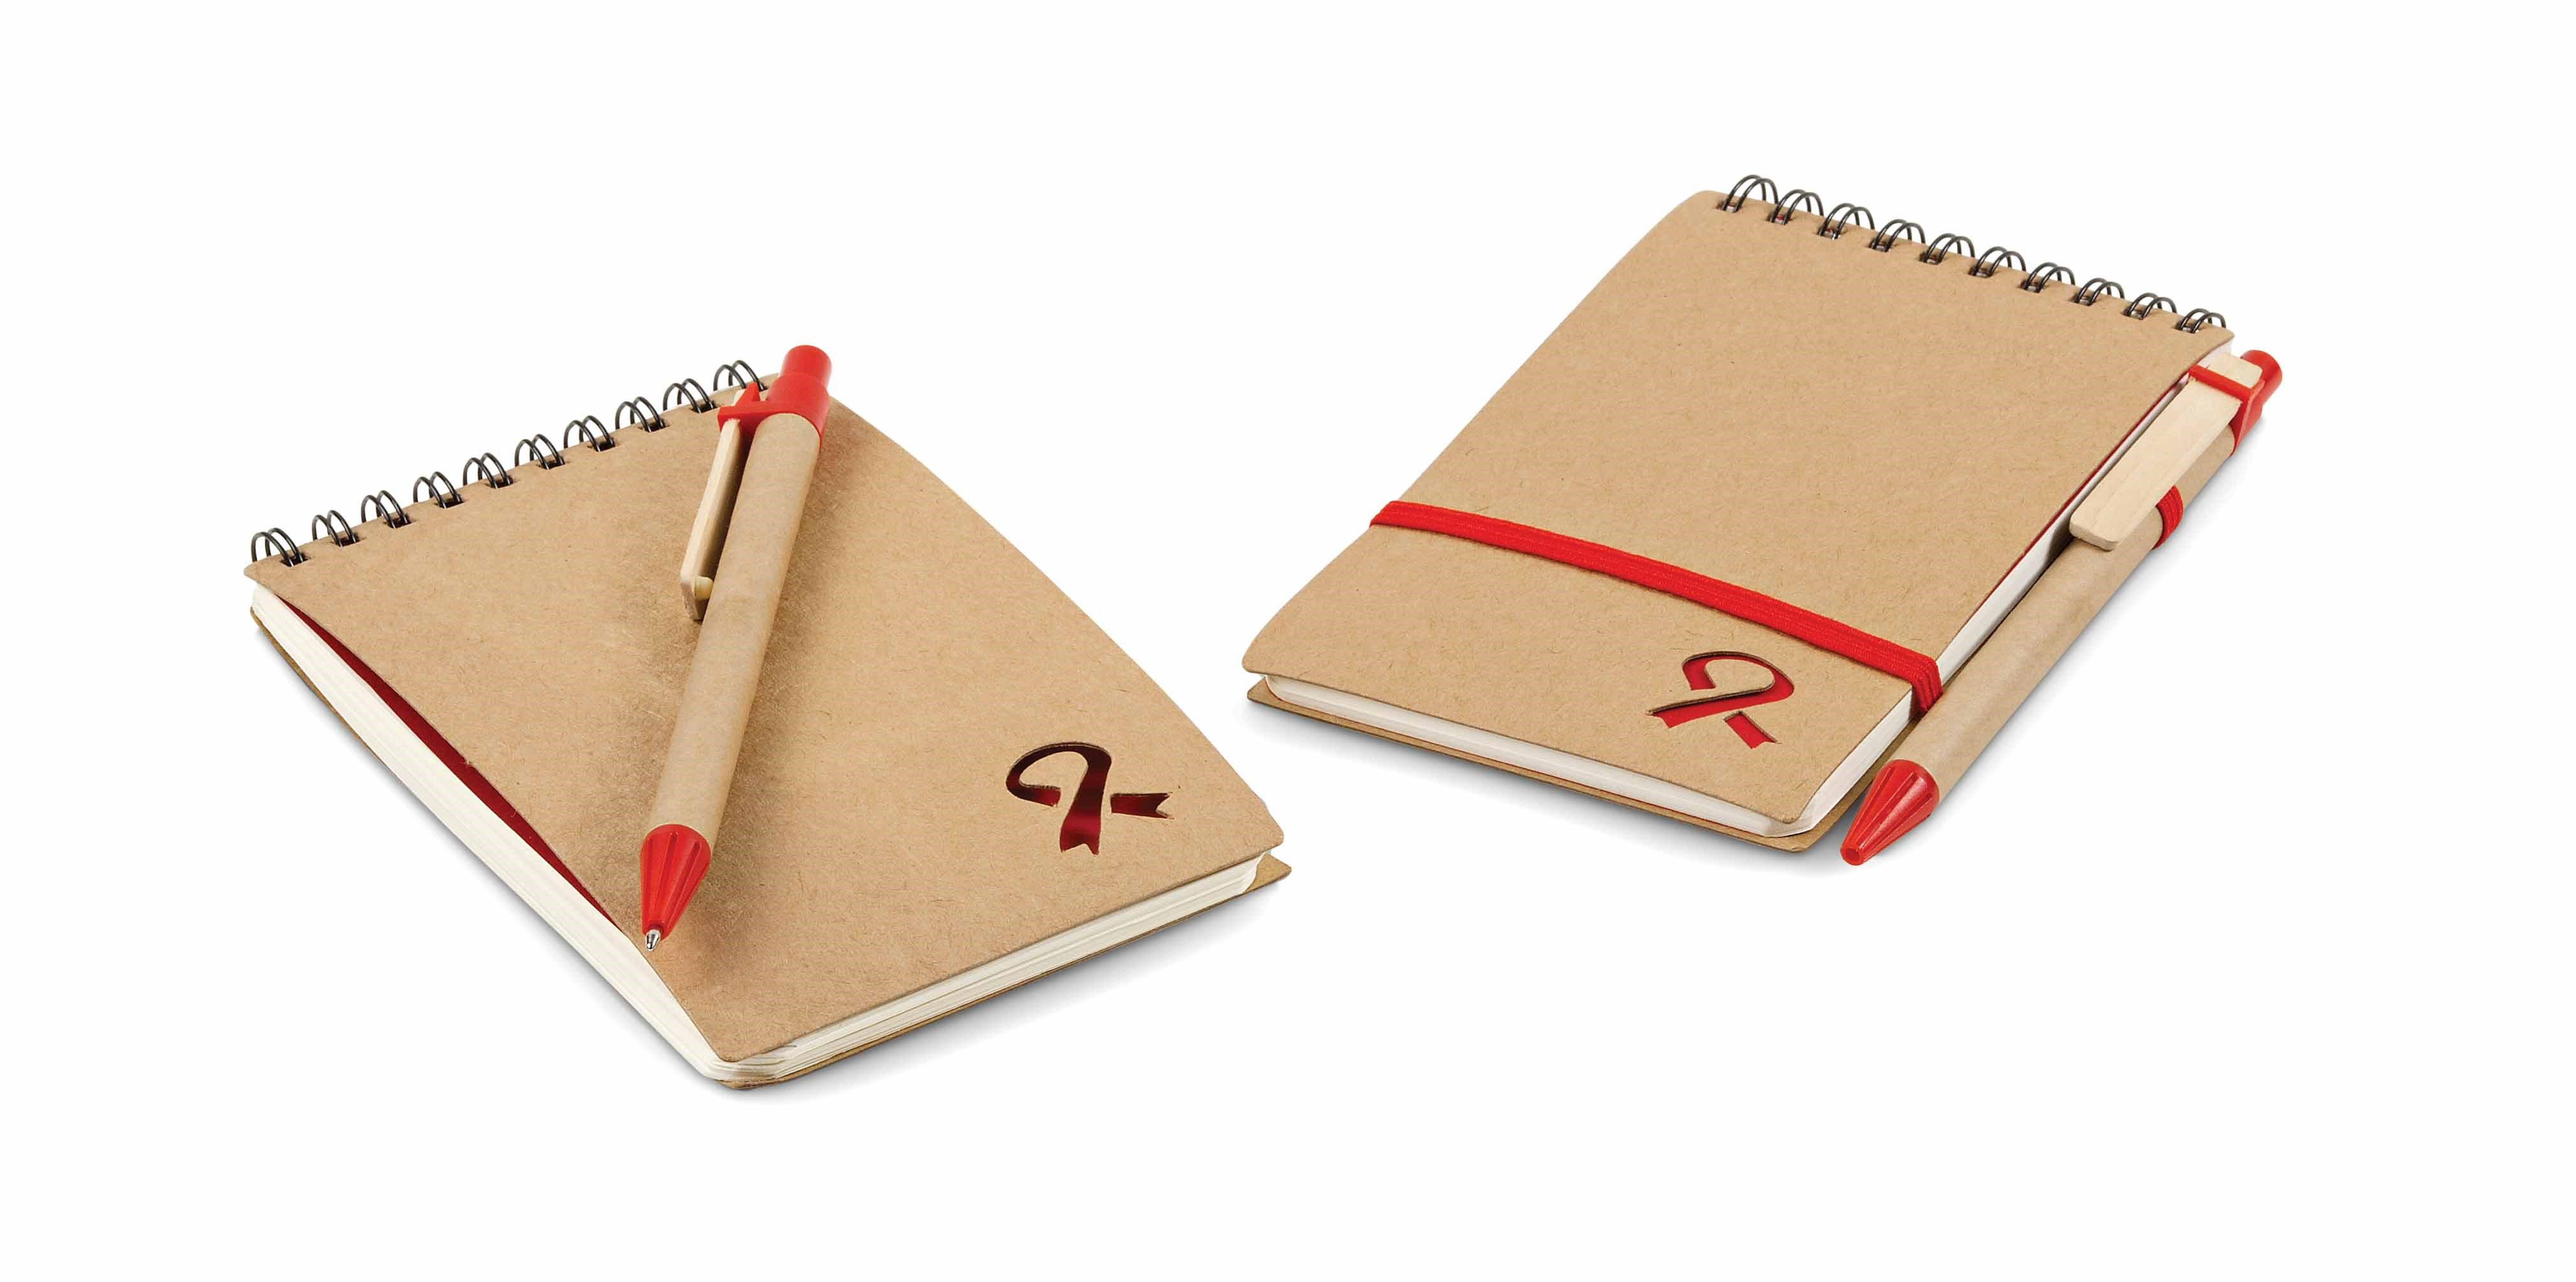 Aids Day Notebook and Pen Gift Sets